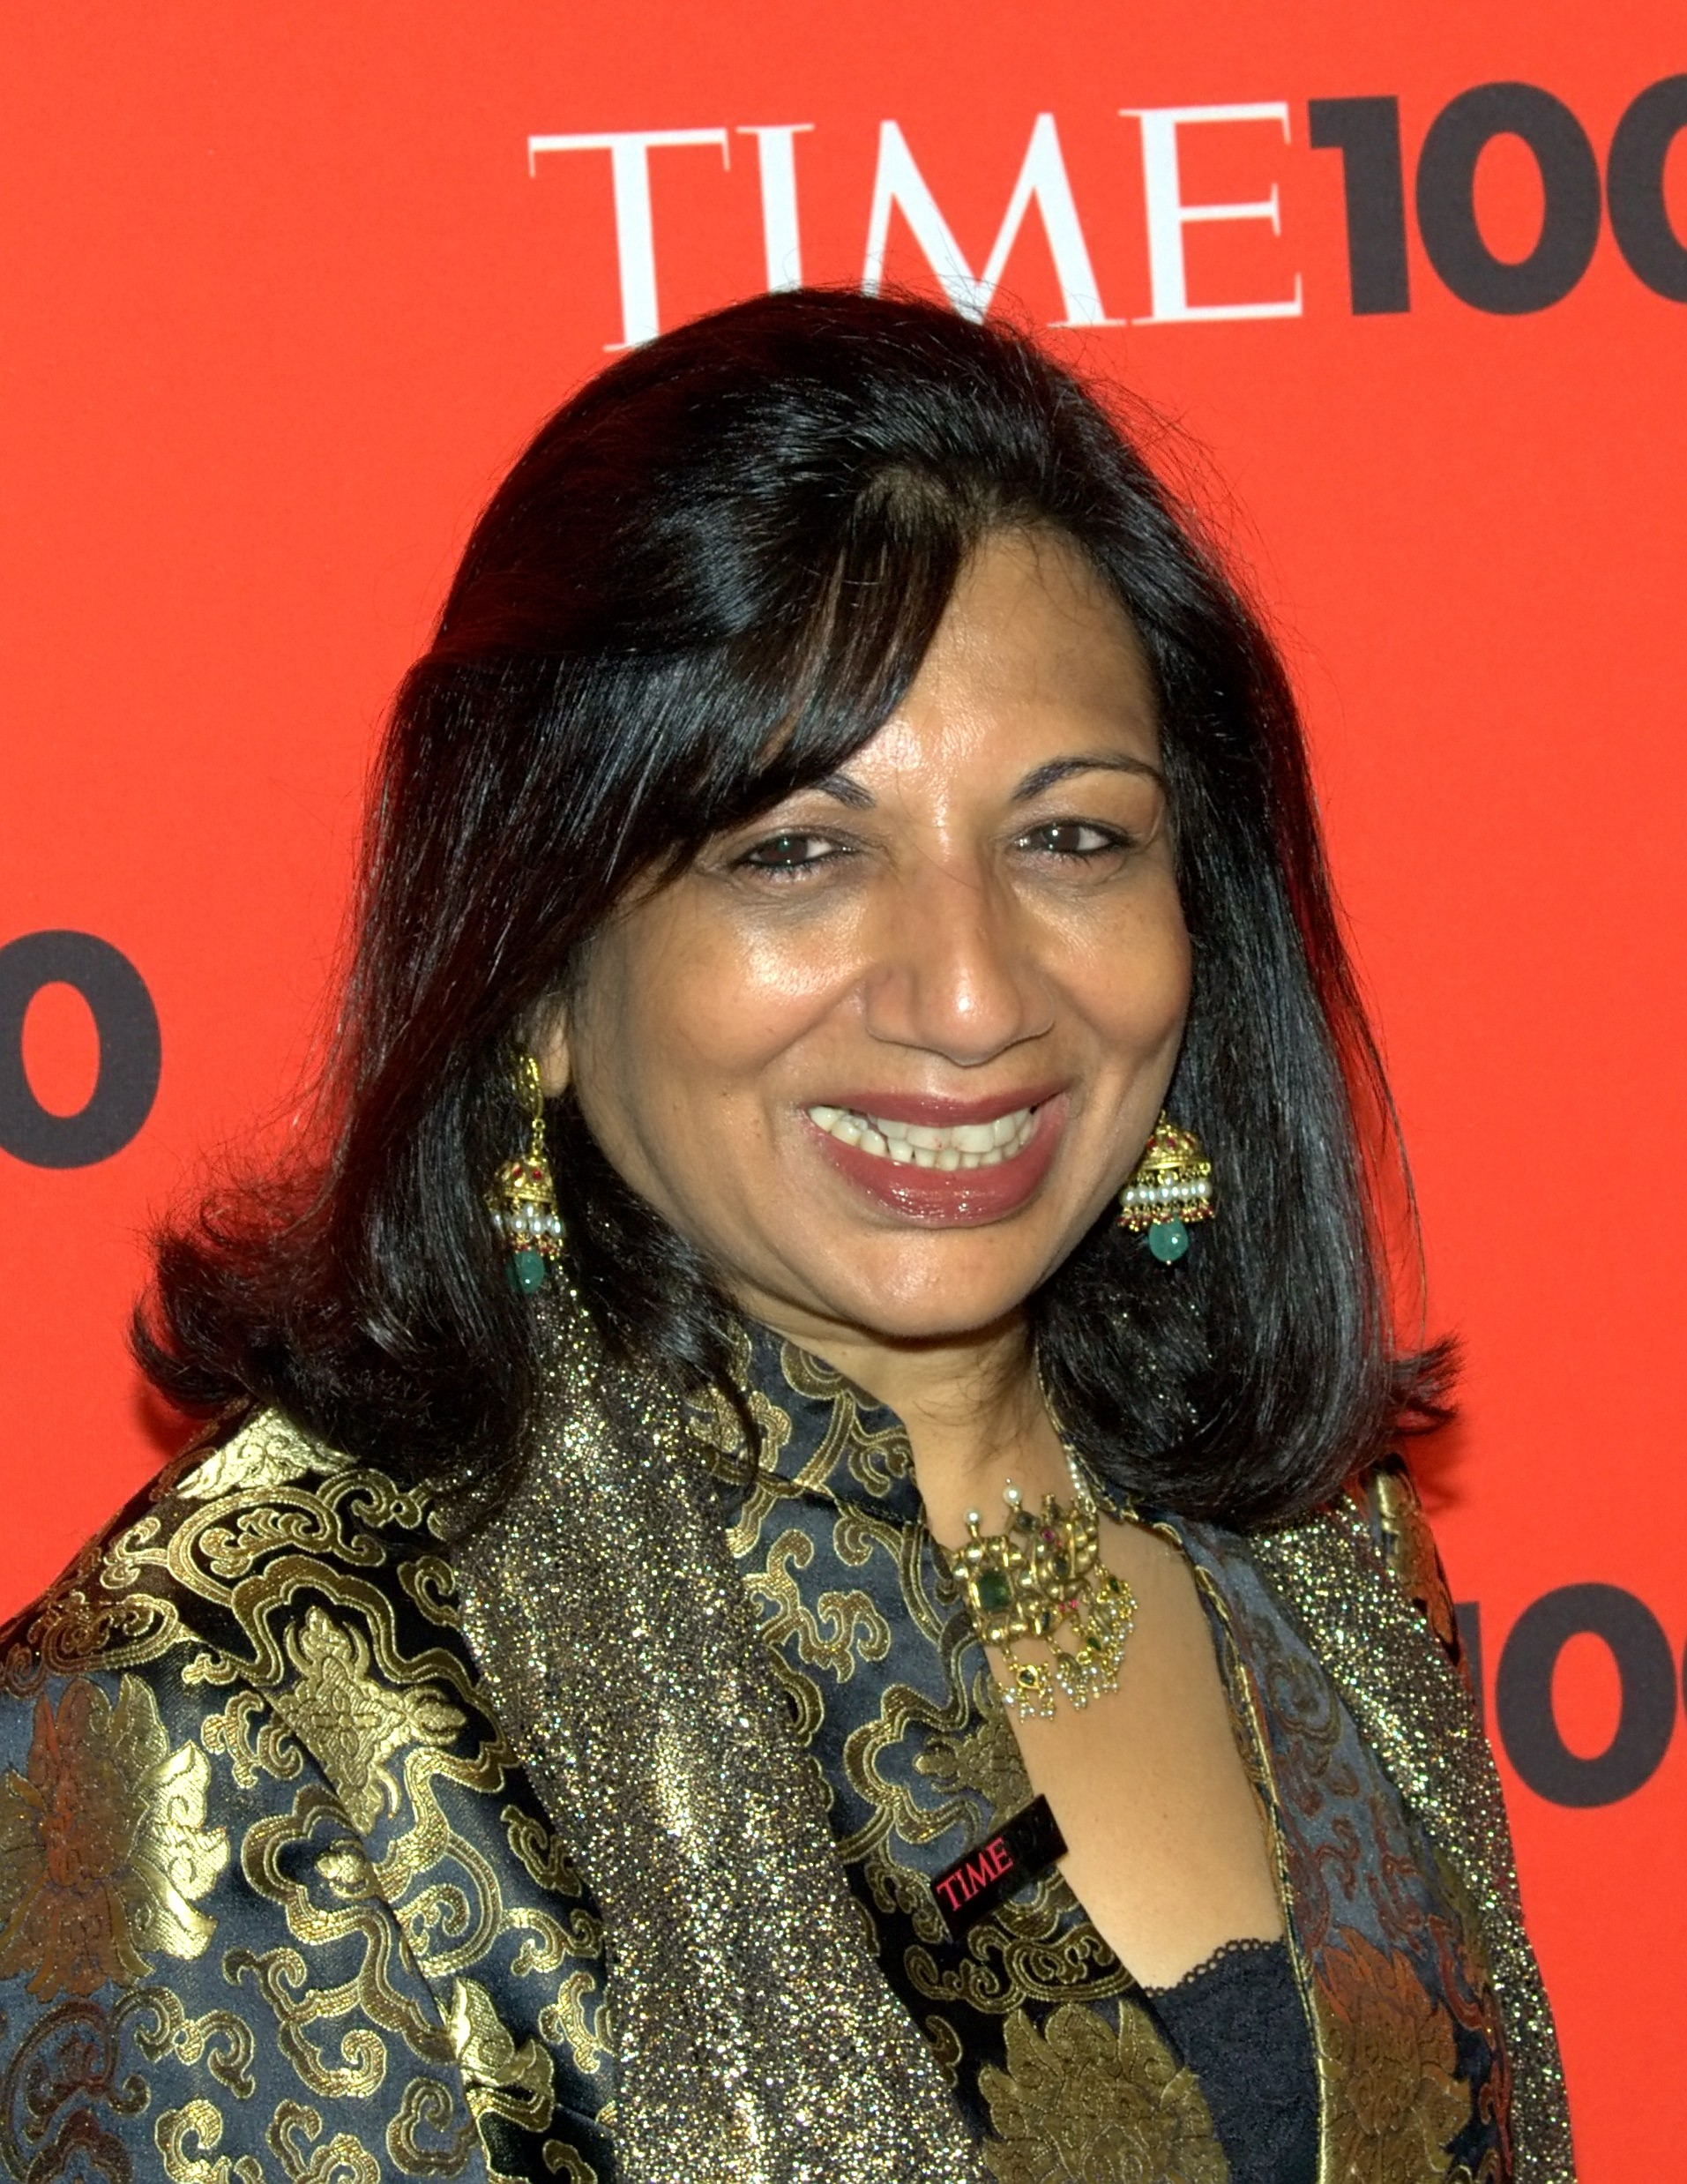 kiran mazumdar shaw - top 3 women entrepreneure in india - importance of education for women